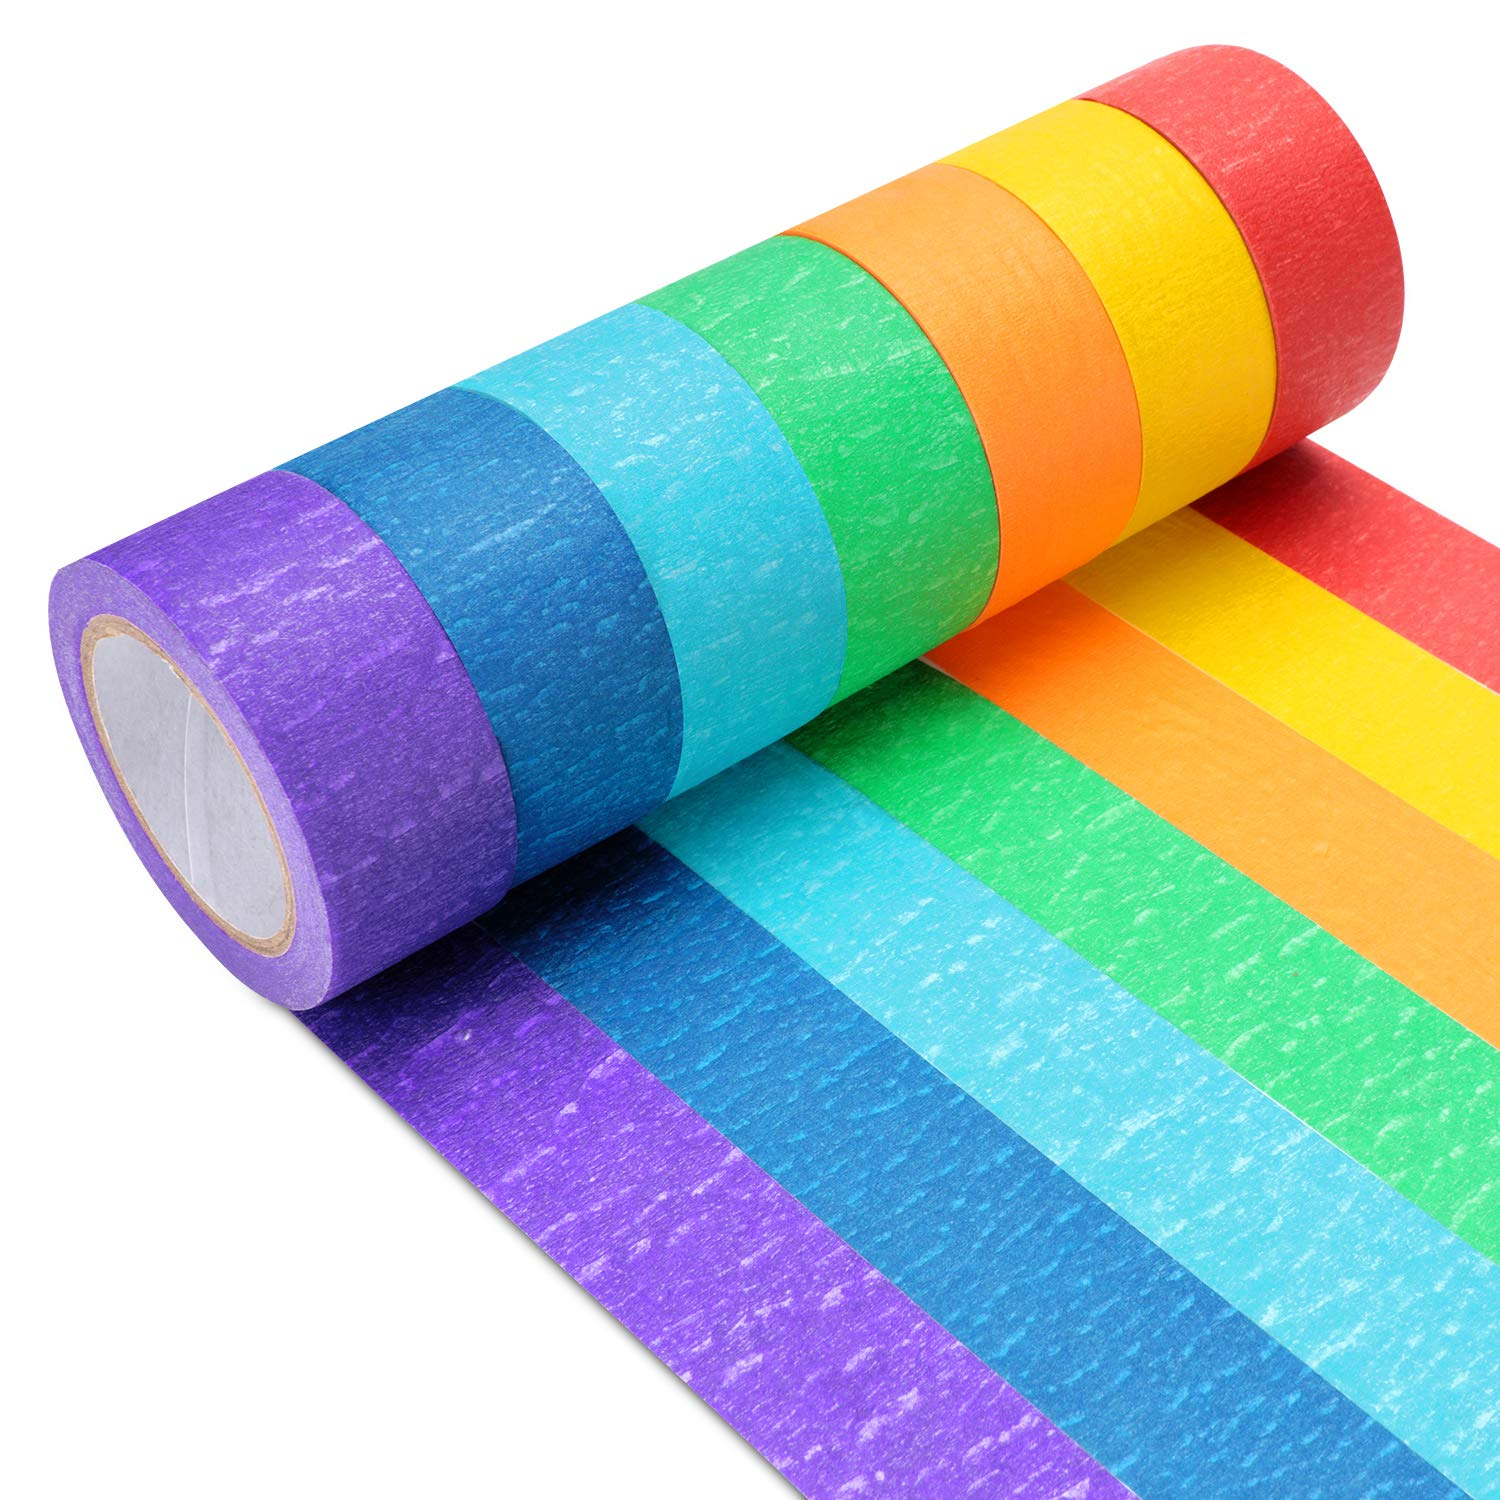 40 Colors Boao 40 Rolls Colorful Washi Tapes Decorative Masking Tapes Board Line Rainbow Tape Rolls for Arts Crafts